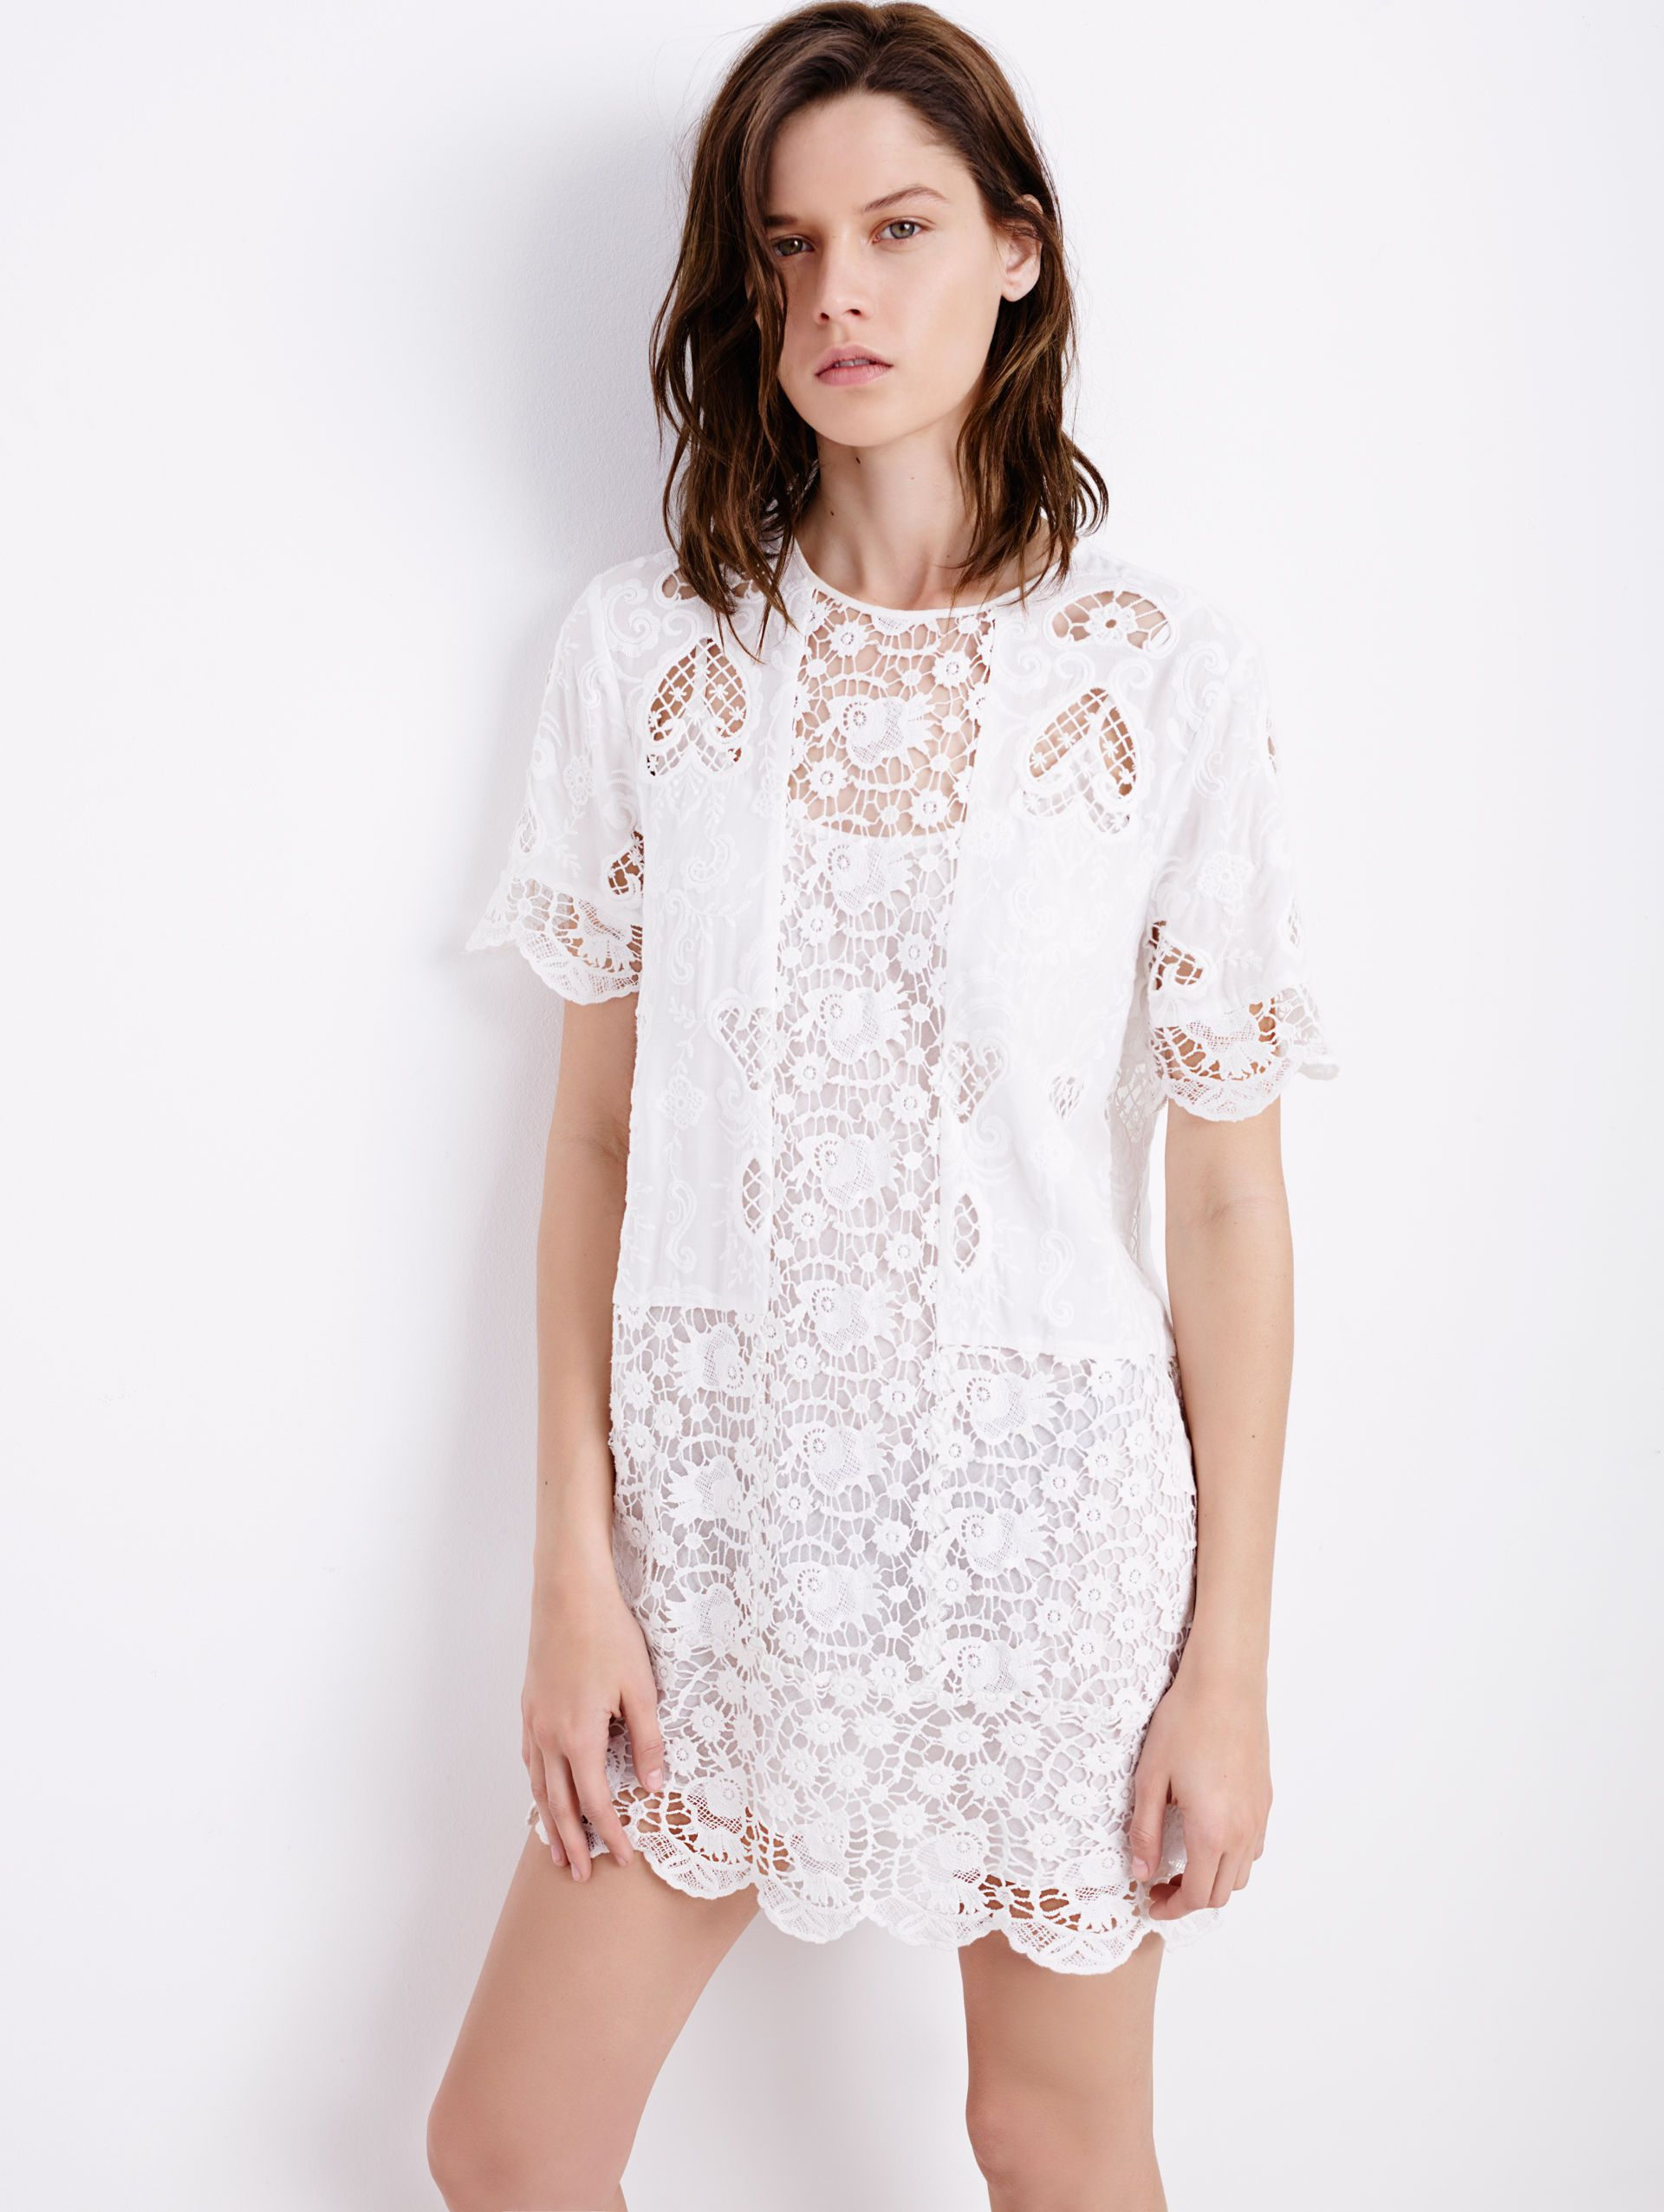 White dress at zara - Try This Lace Dress 129 From Zara Fearlessfashionista